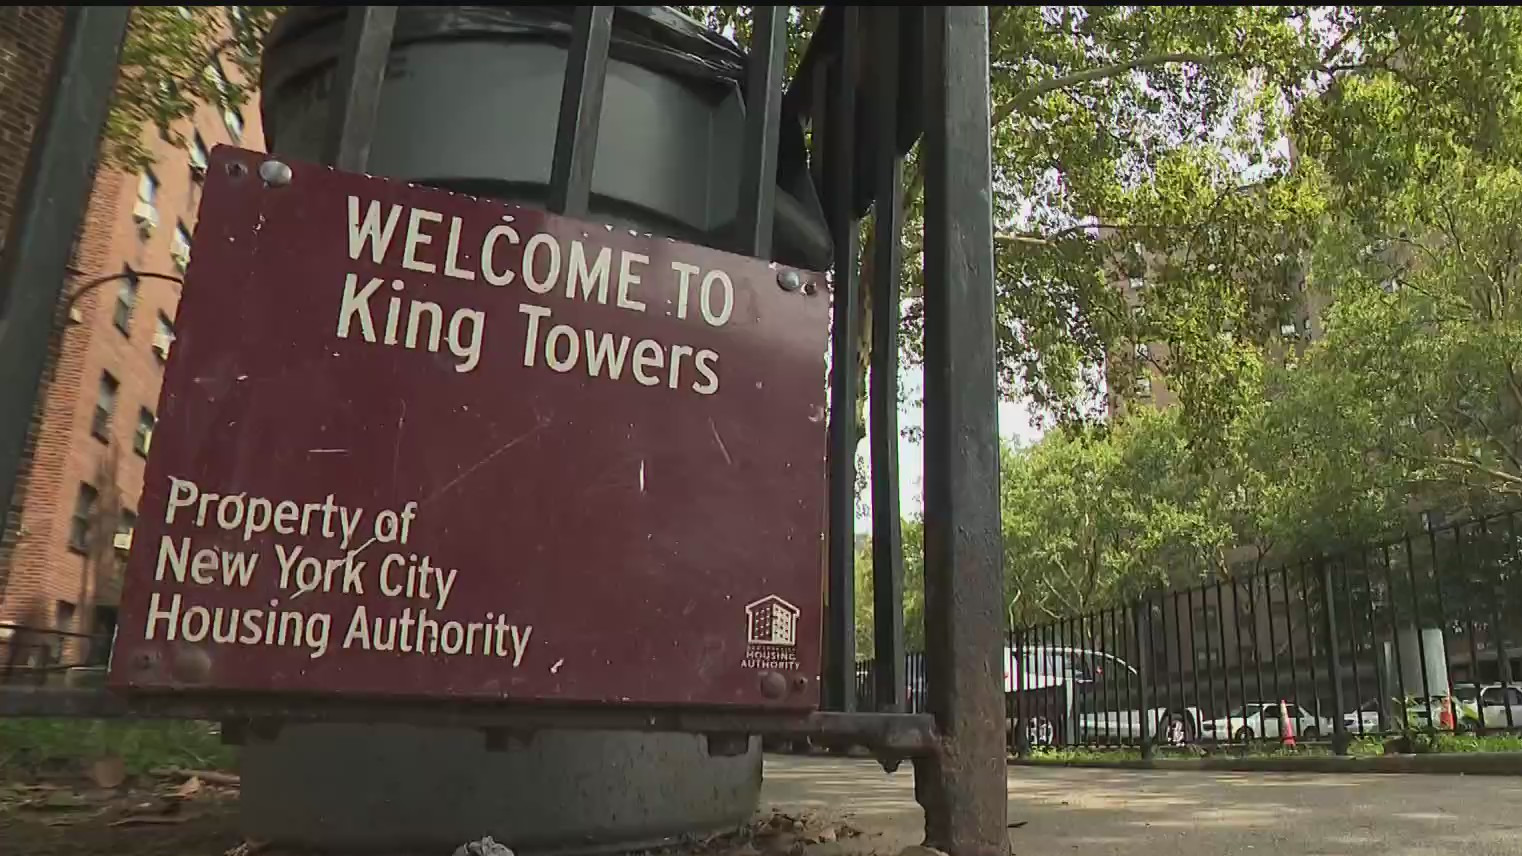 Sign outside King Towers